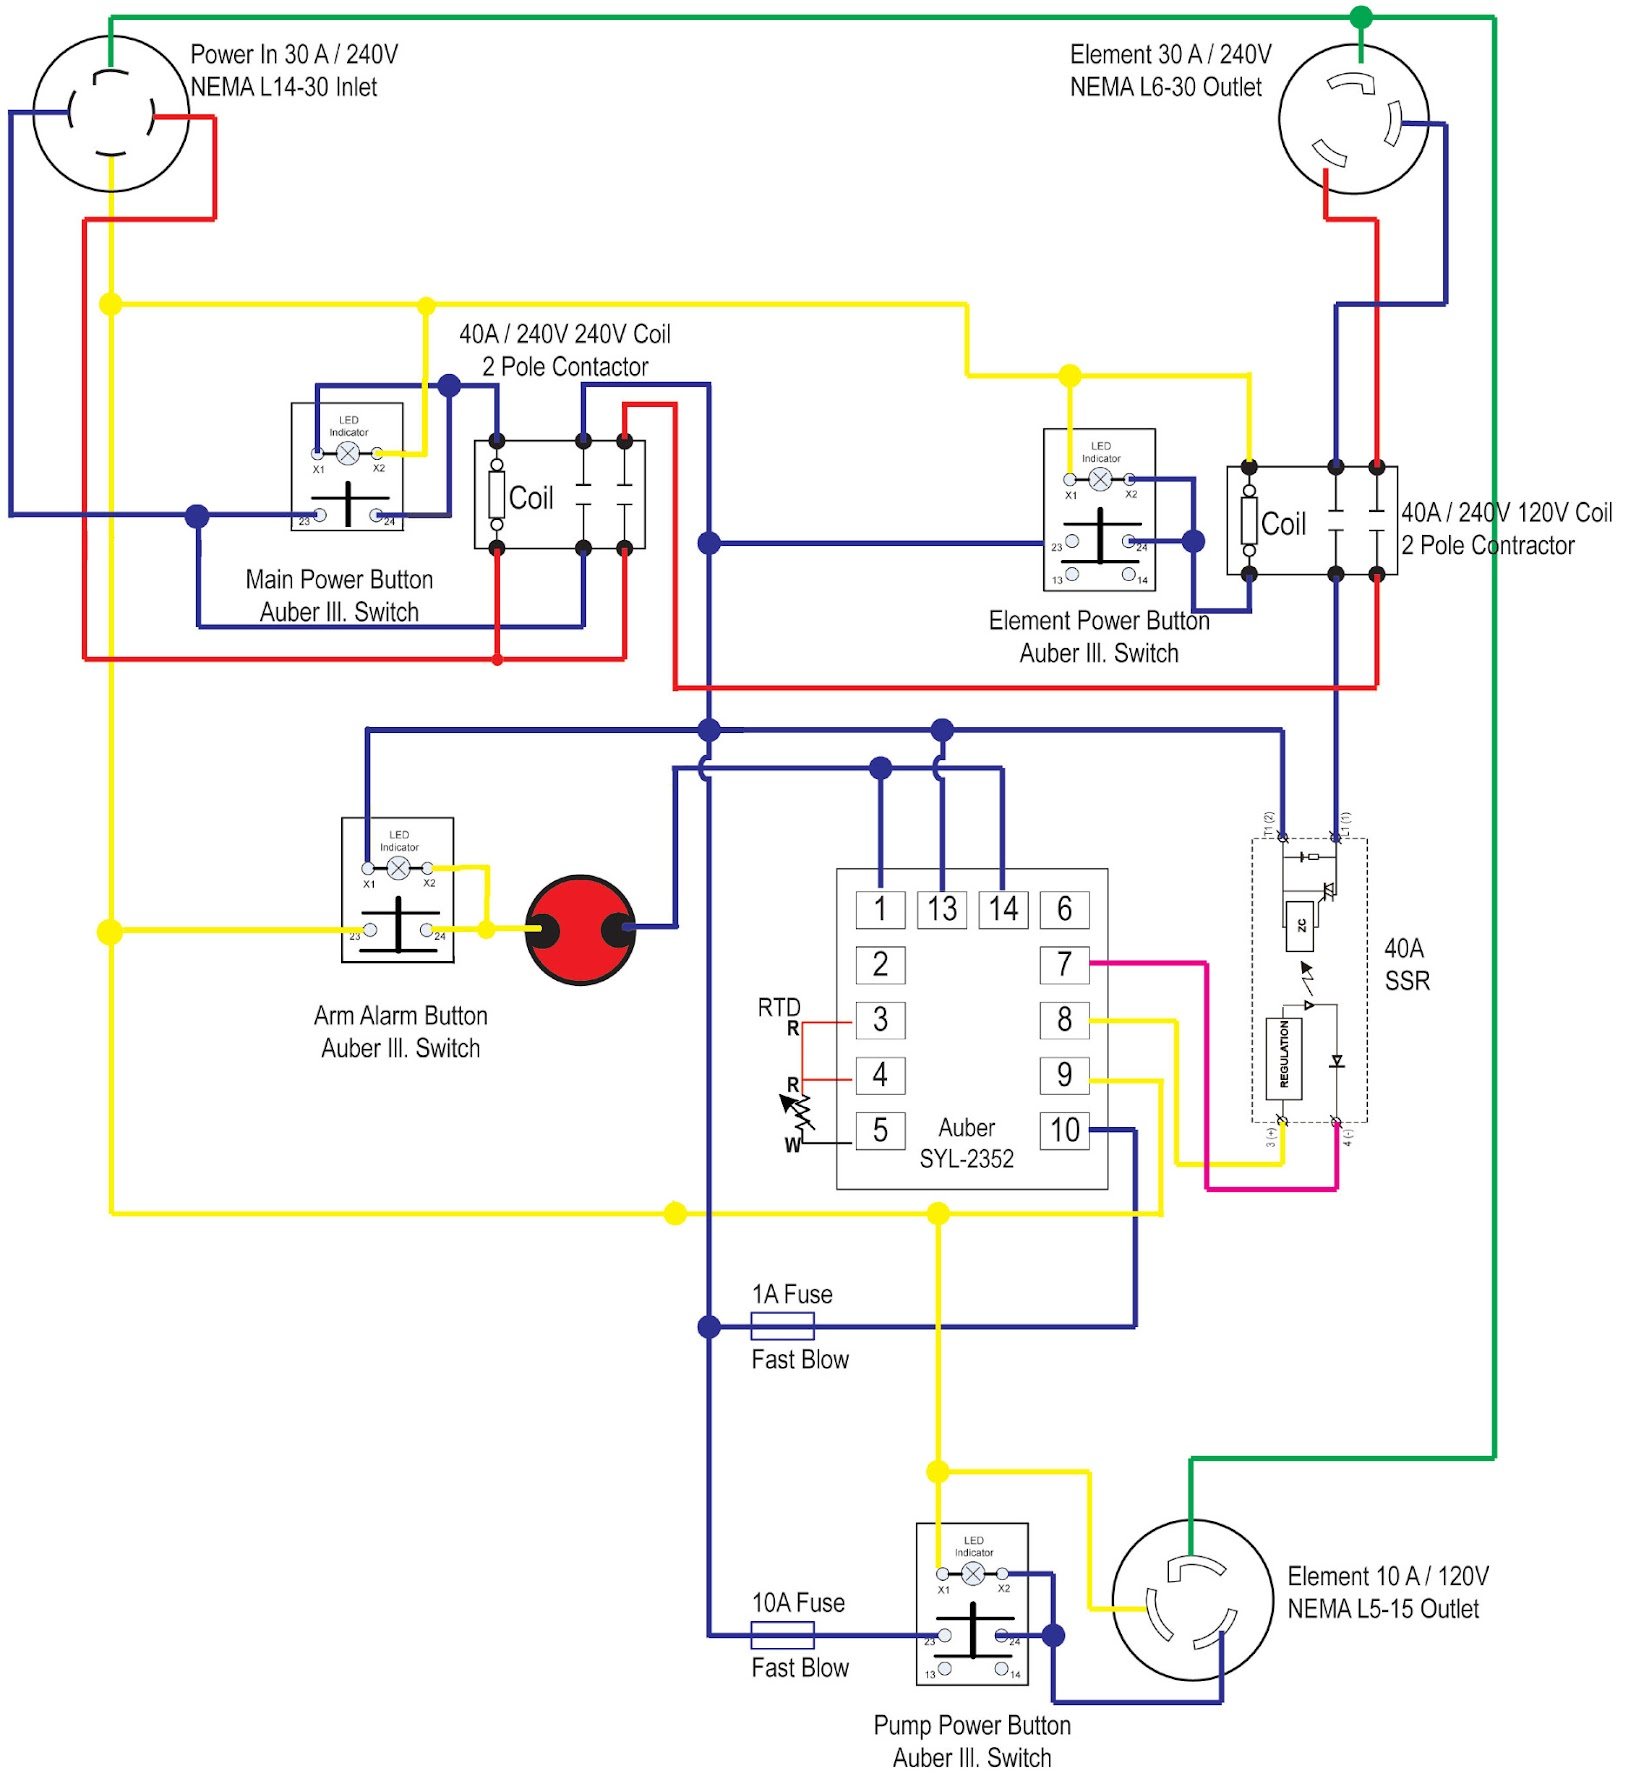 wiring diagram lukez auberins pushbutton switches home brew forums syl-2352 wiring diagram at couponss.co